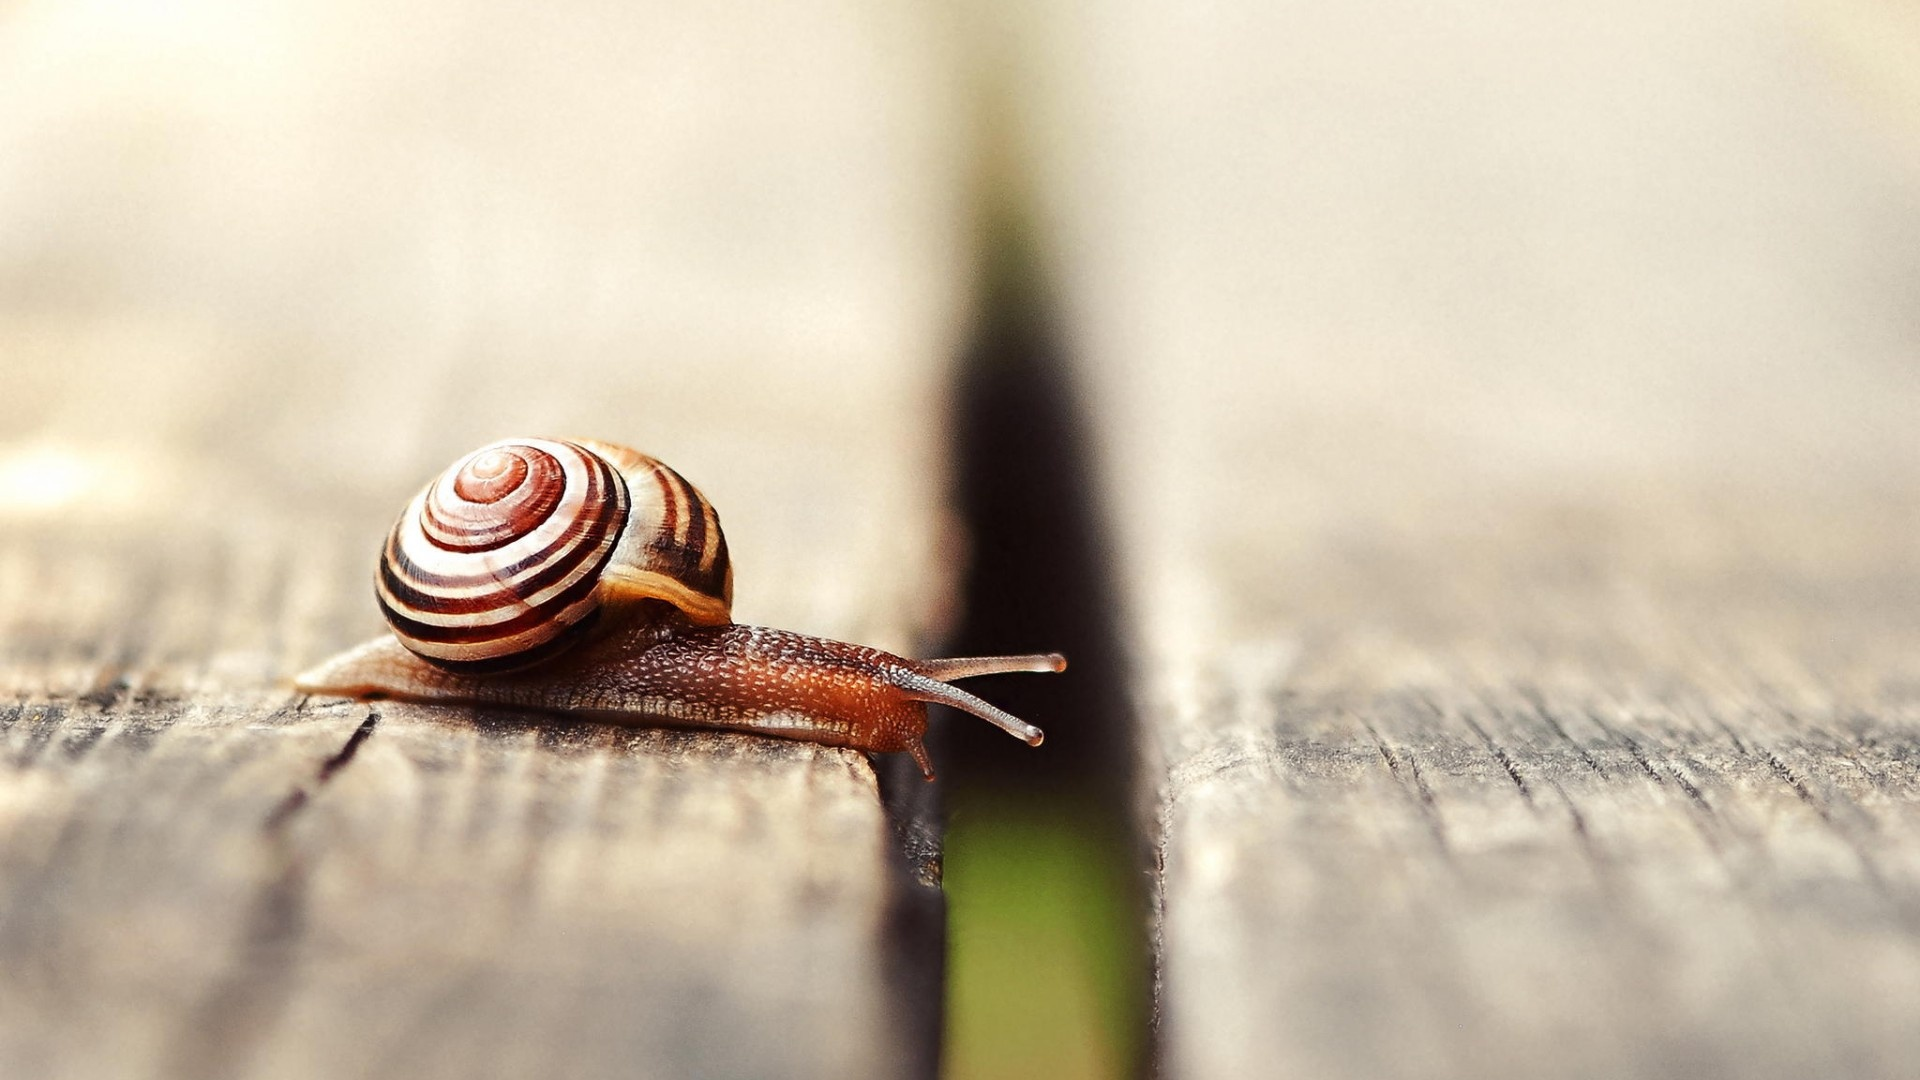 Snail Movement On Boards